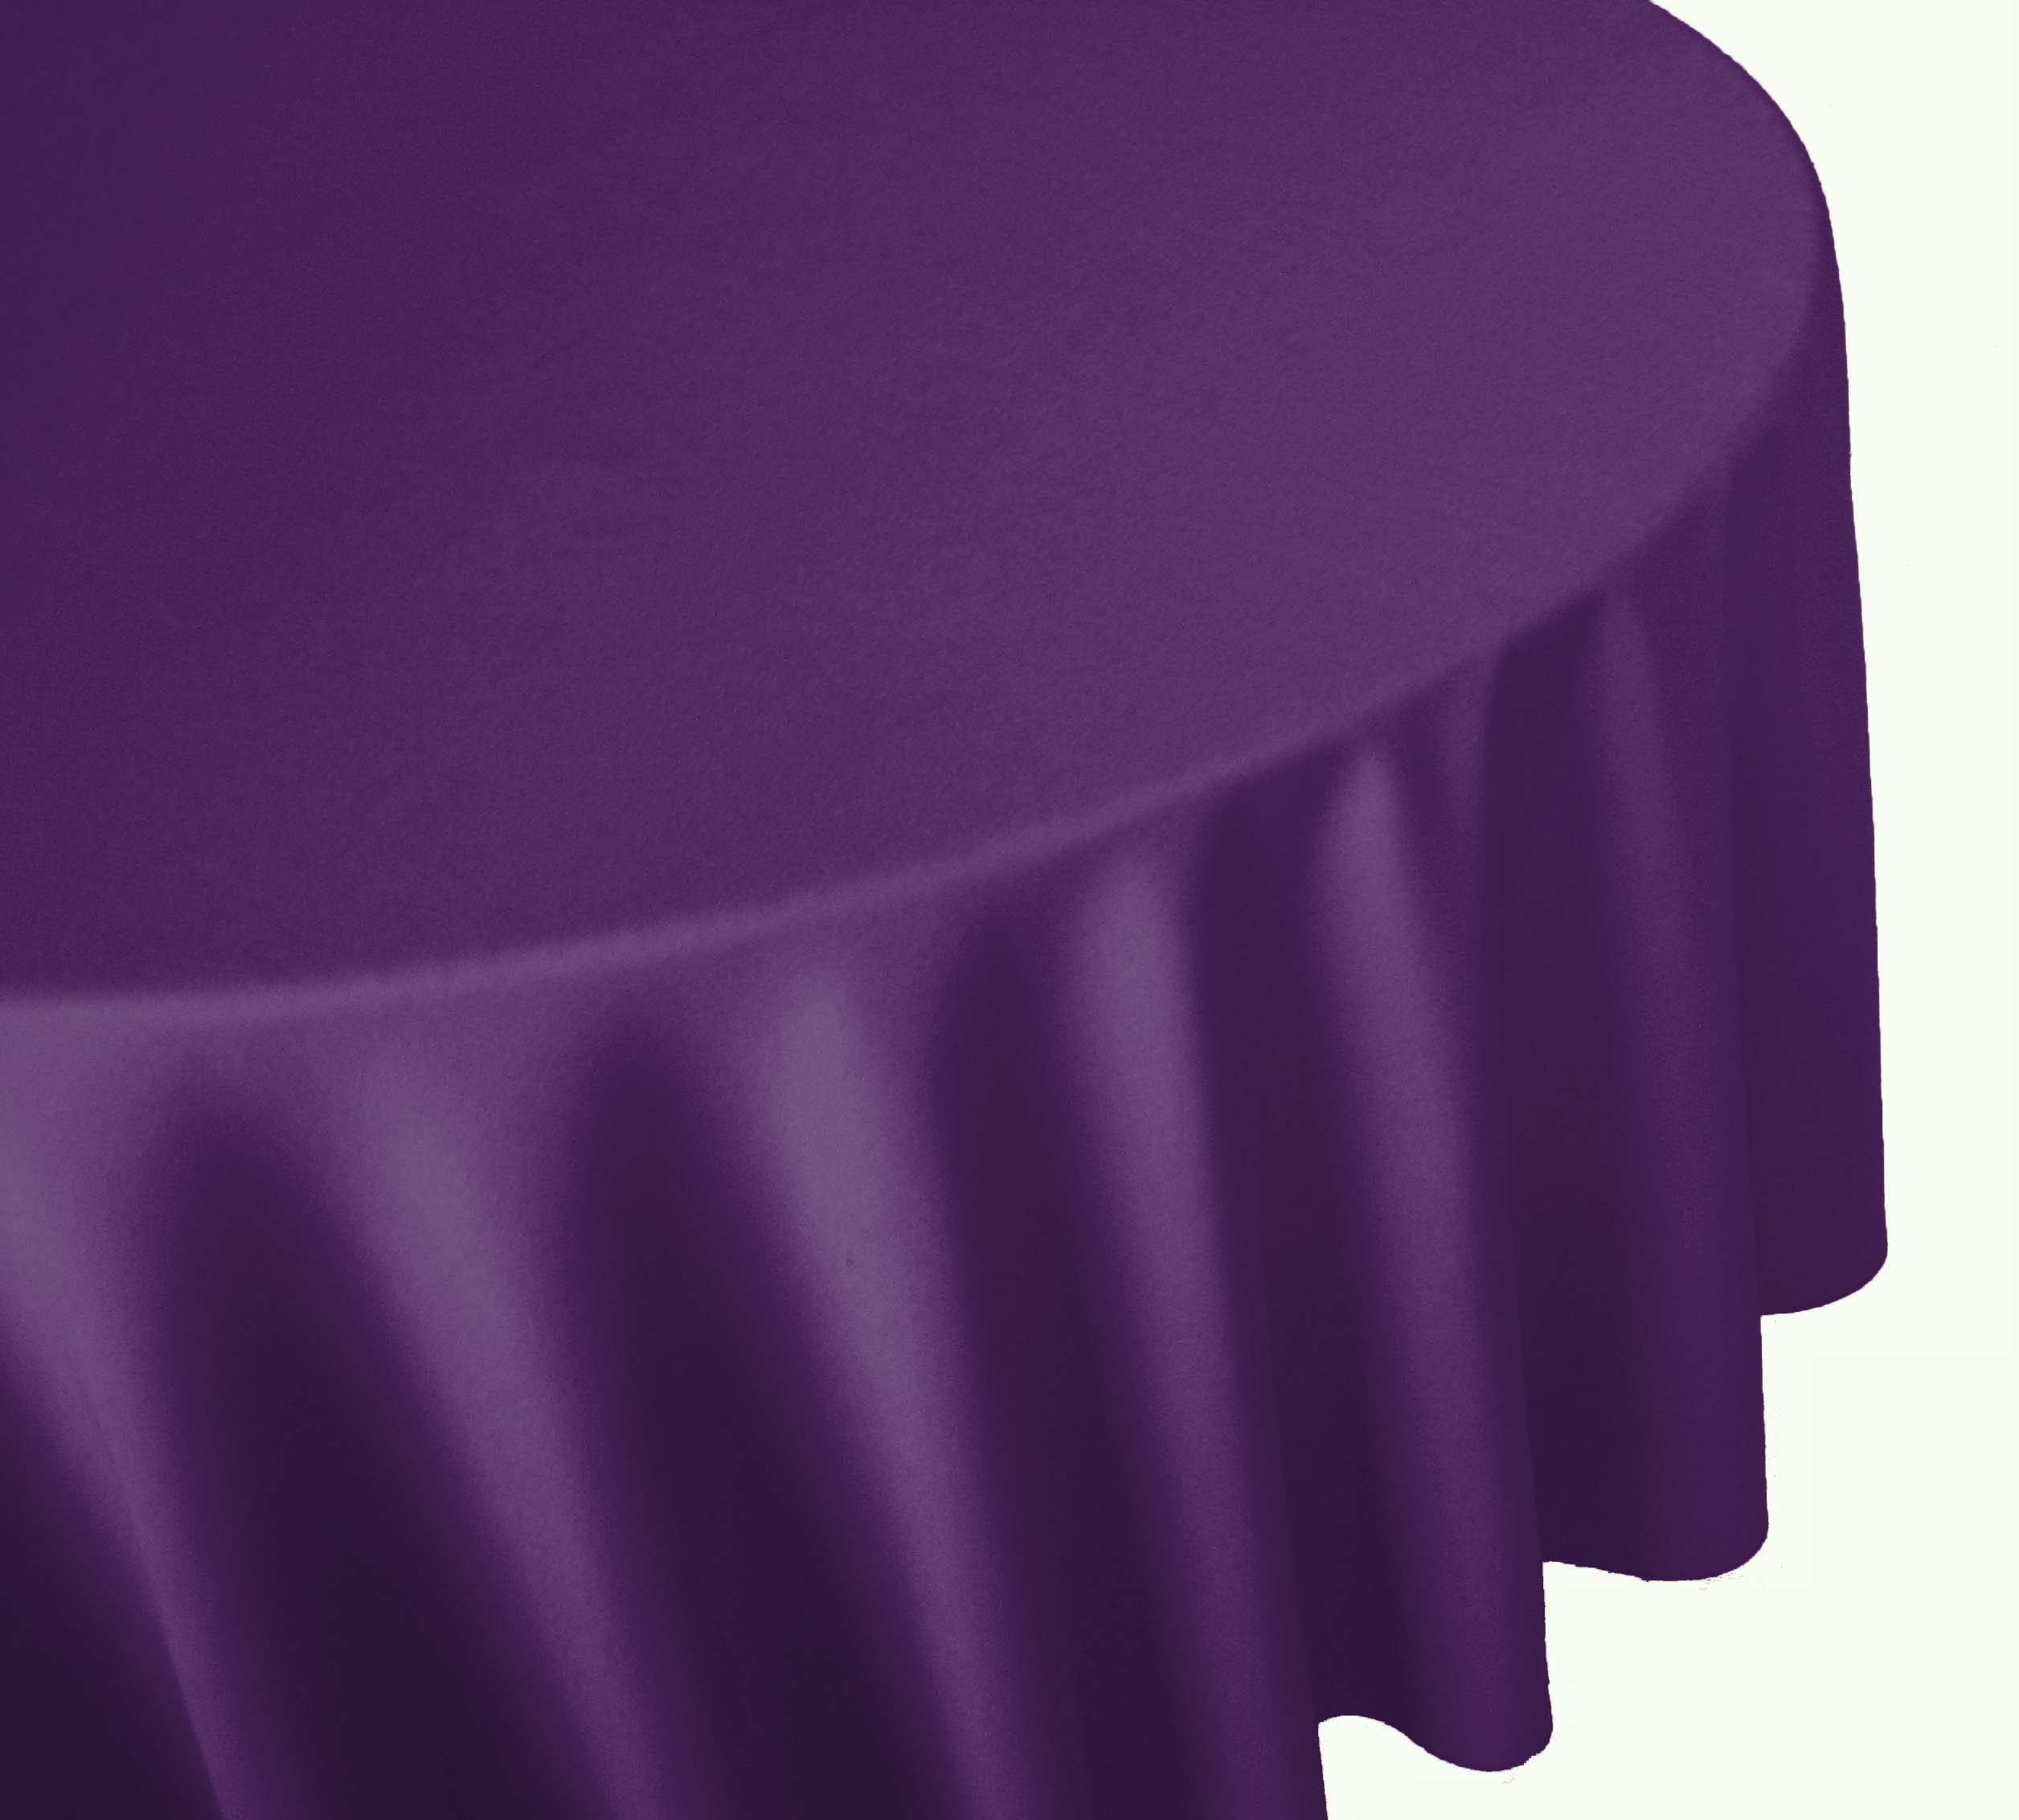 Purple Linen Table Cover Cloth Banquet Round